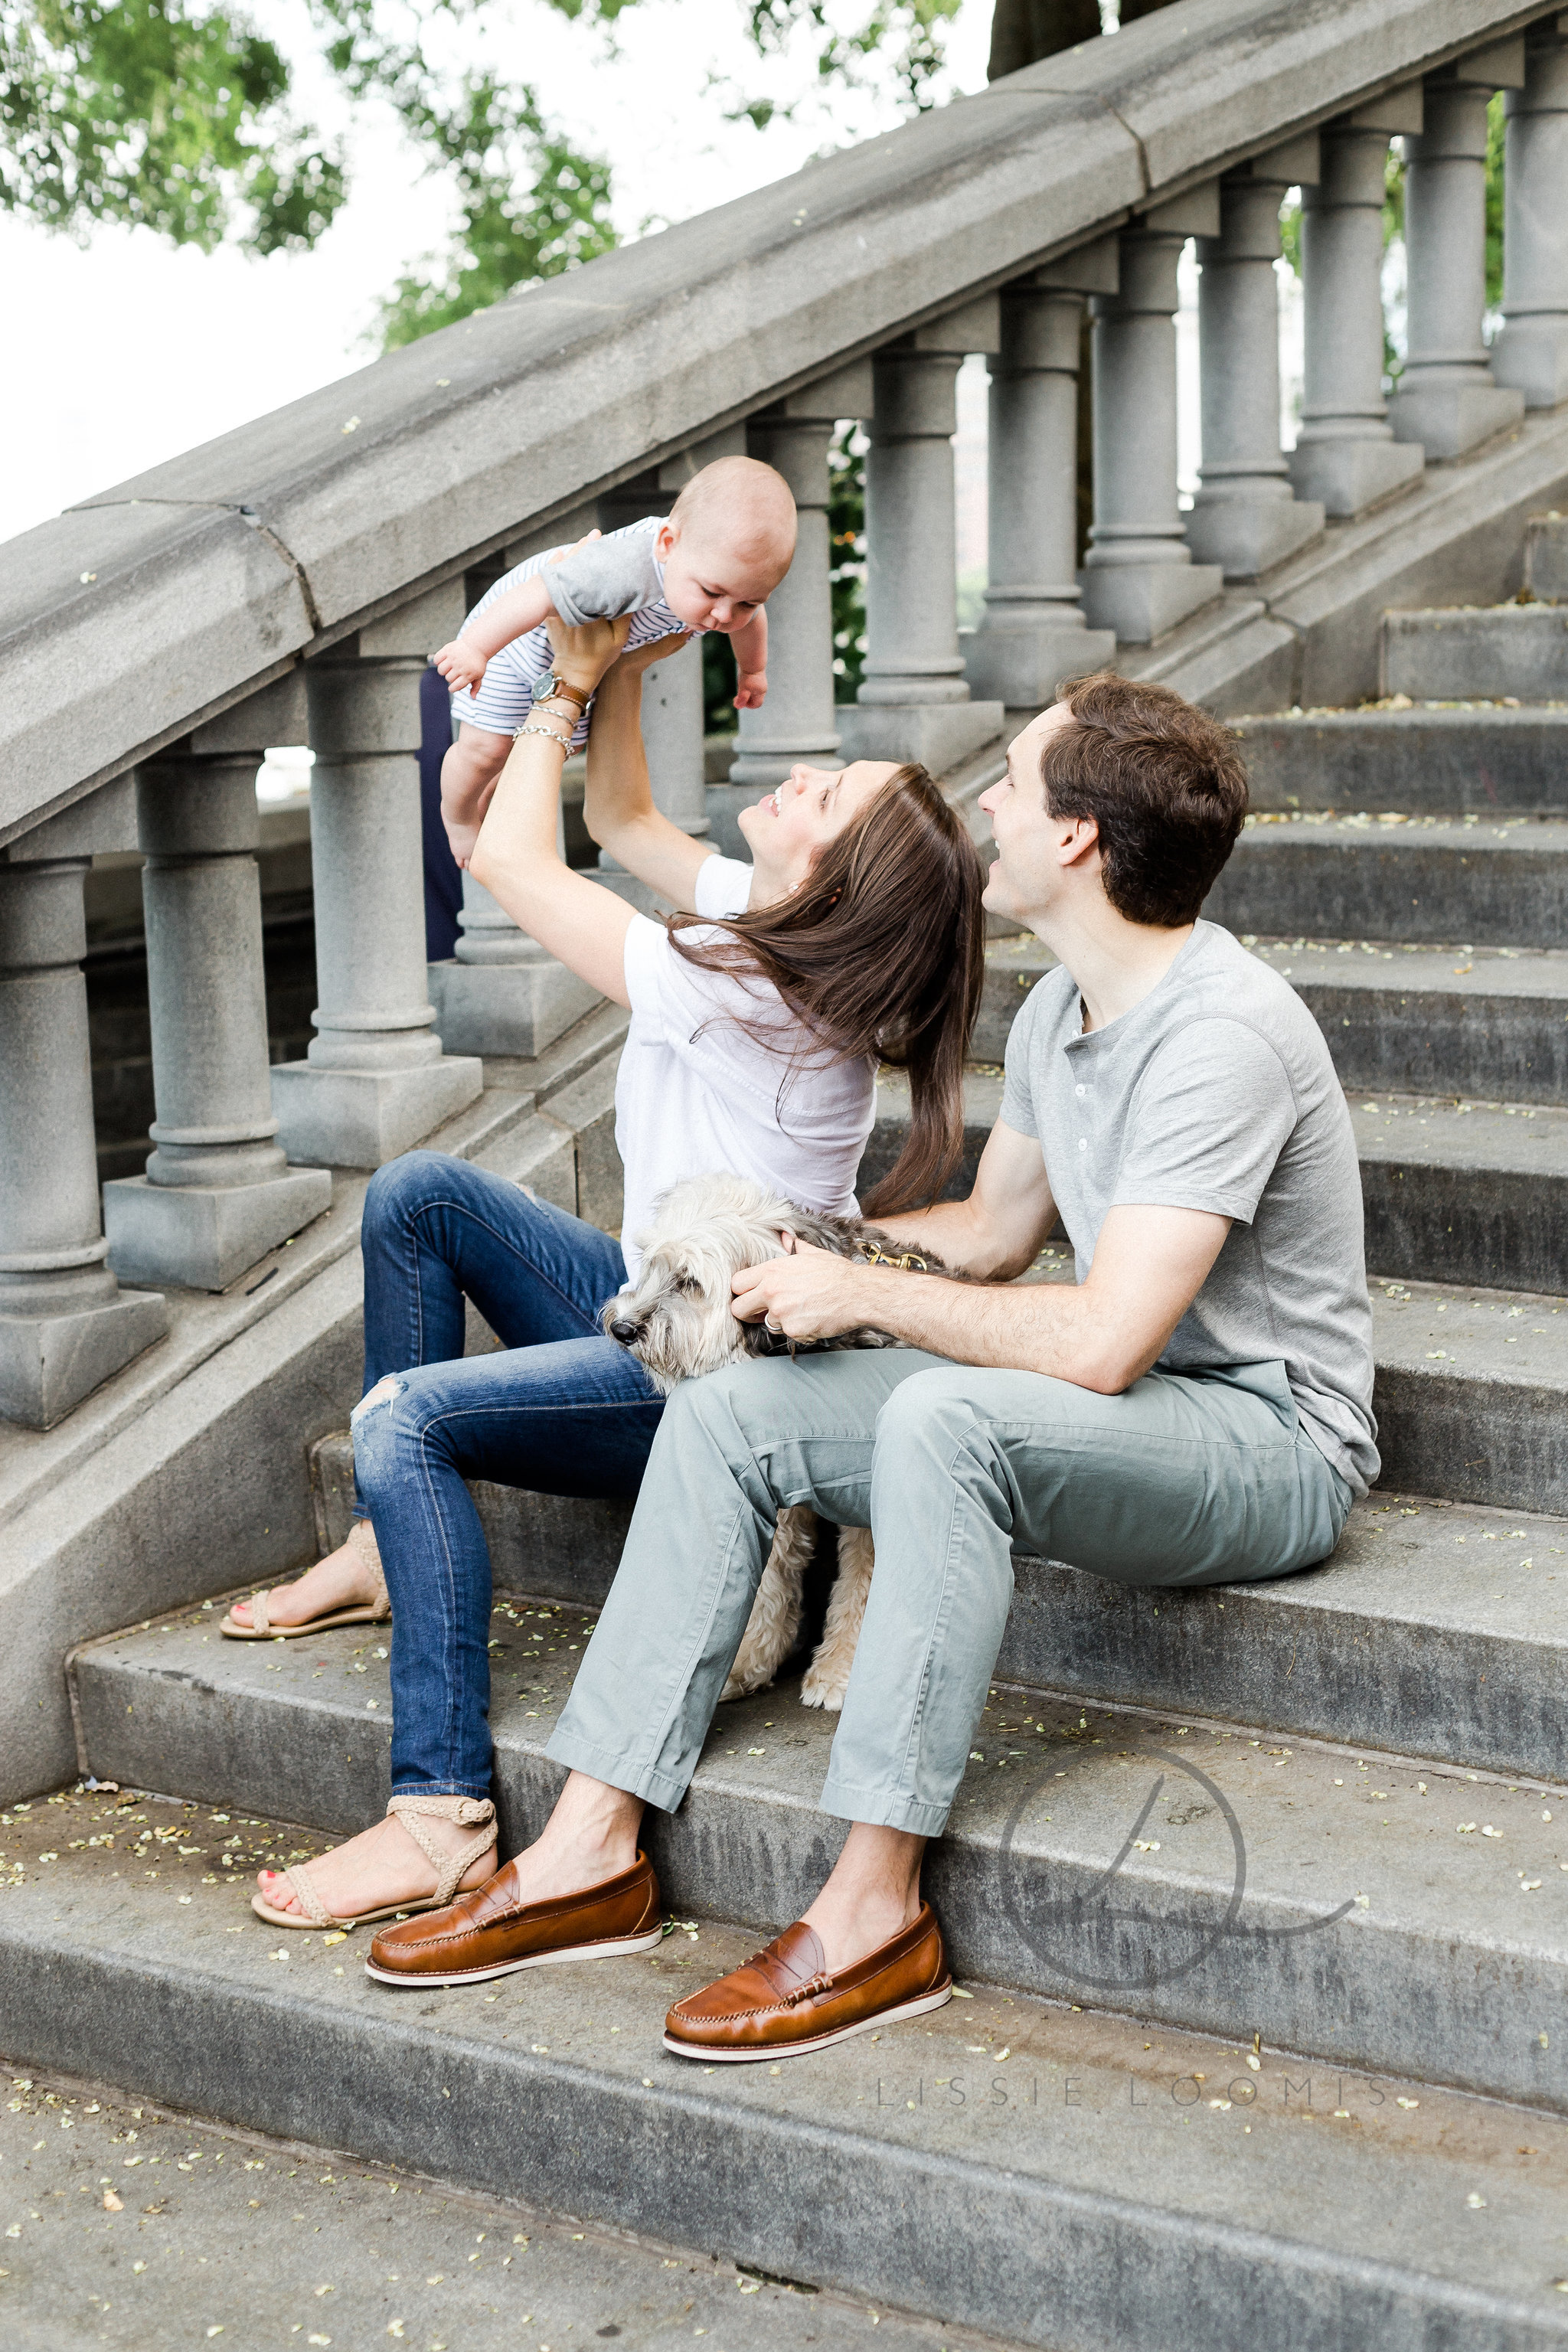 lissie-loomis-photo-newyorkcity-family-photography-baby-photographer-brooklyn63.JPG